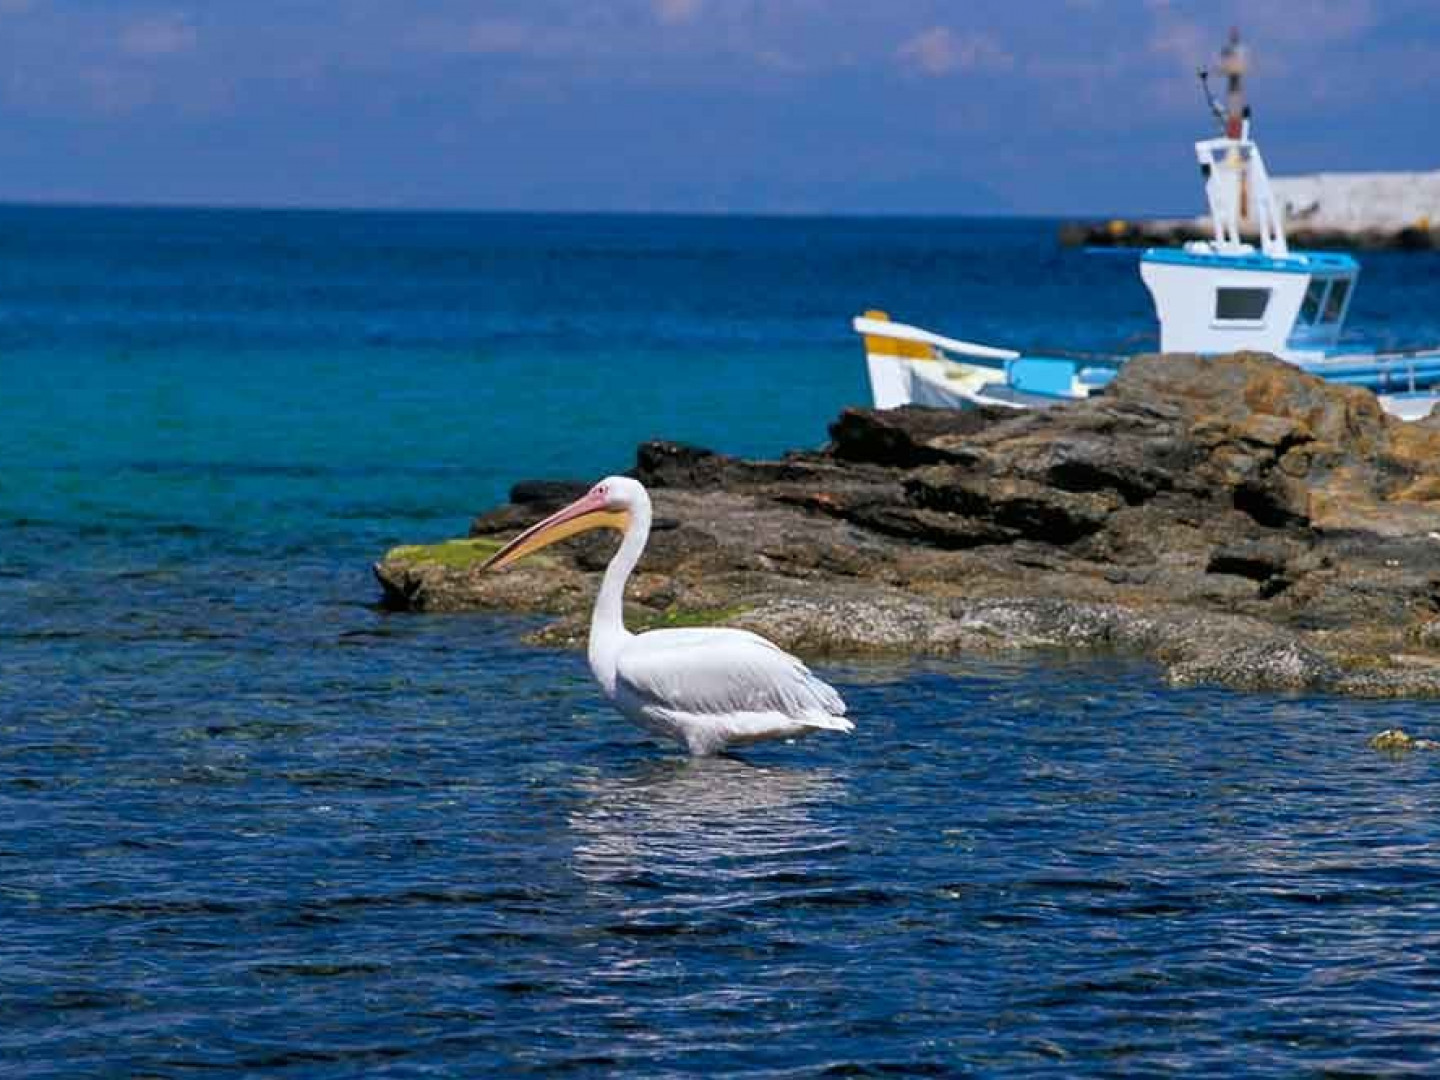 6. Pelicans are the mascots of Mykonos